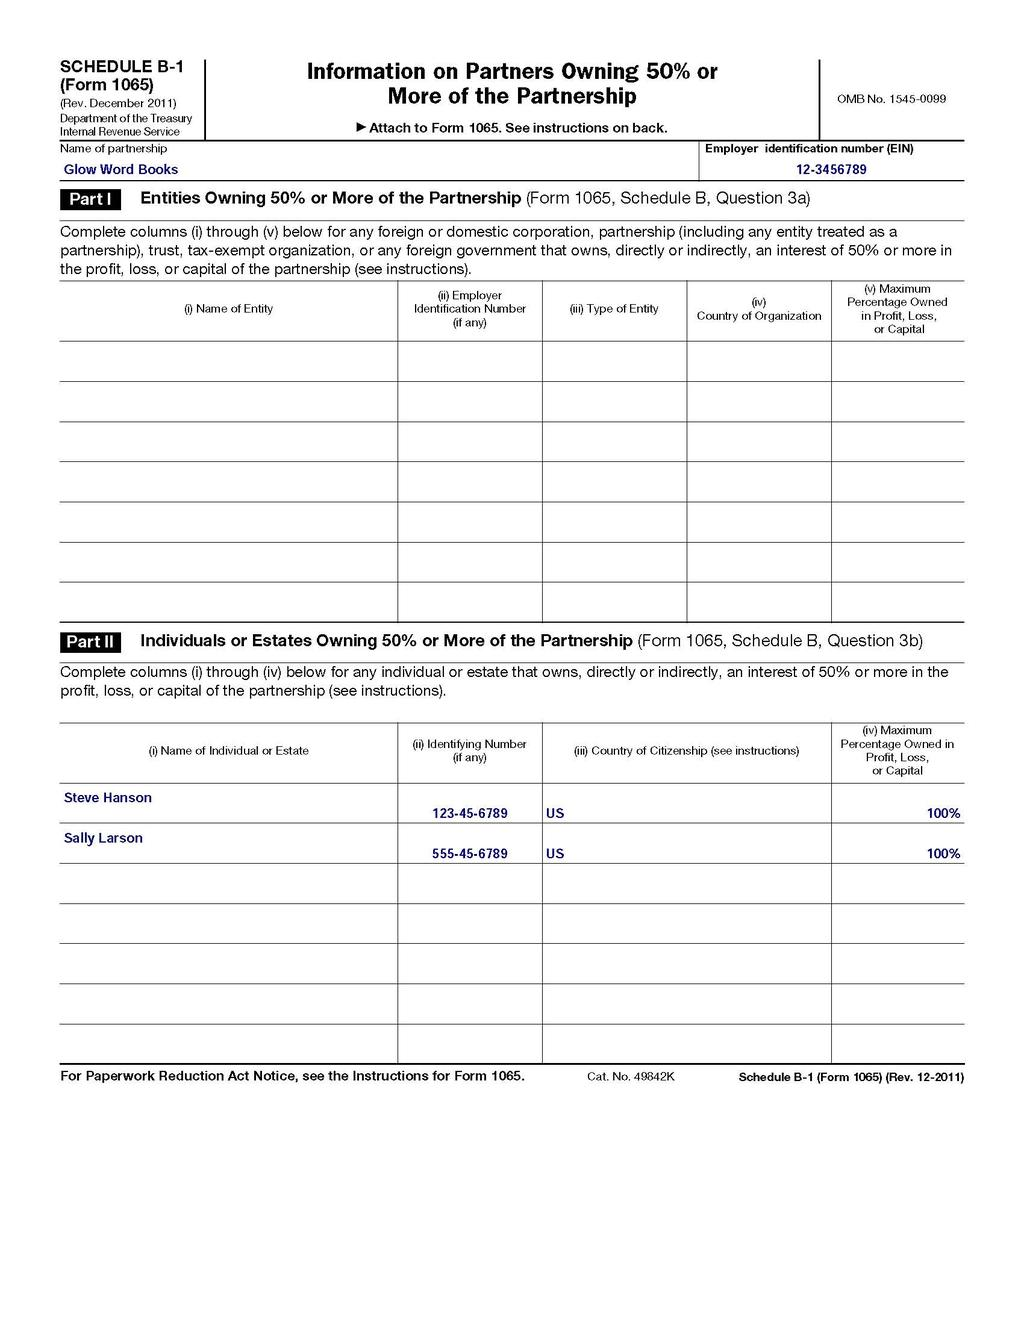 Irs Form 1065 Late Filing Penalty